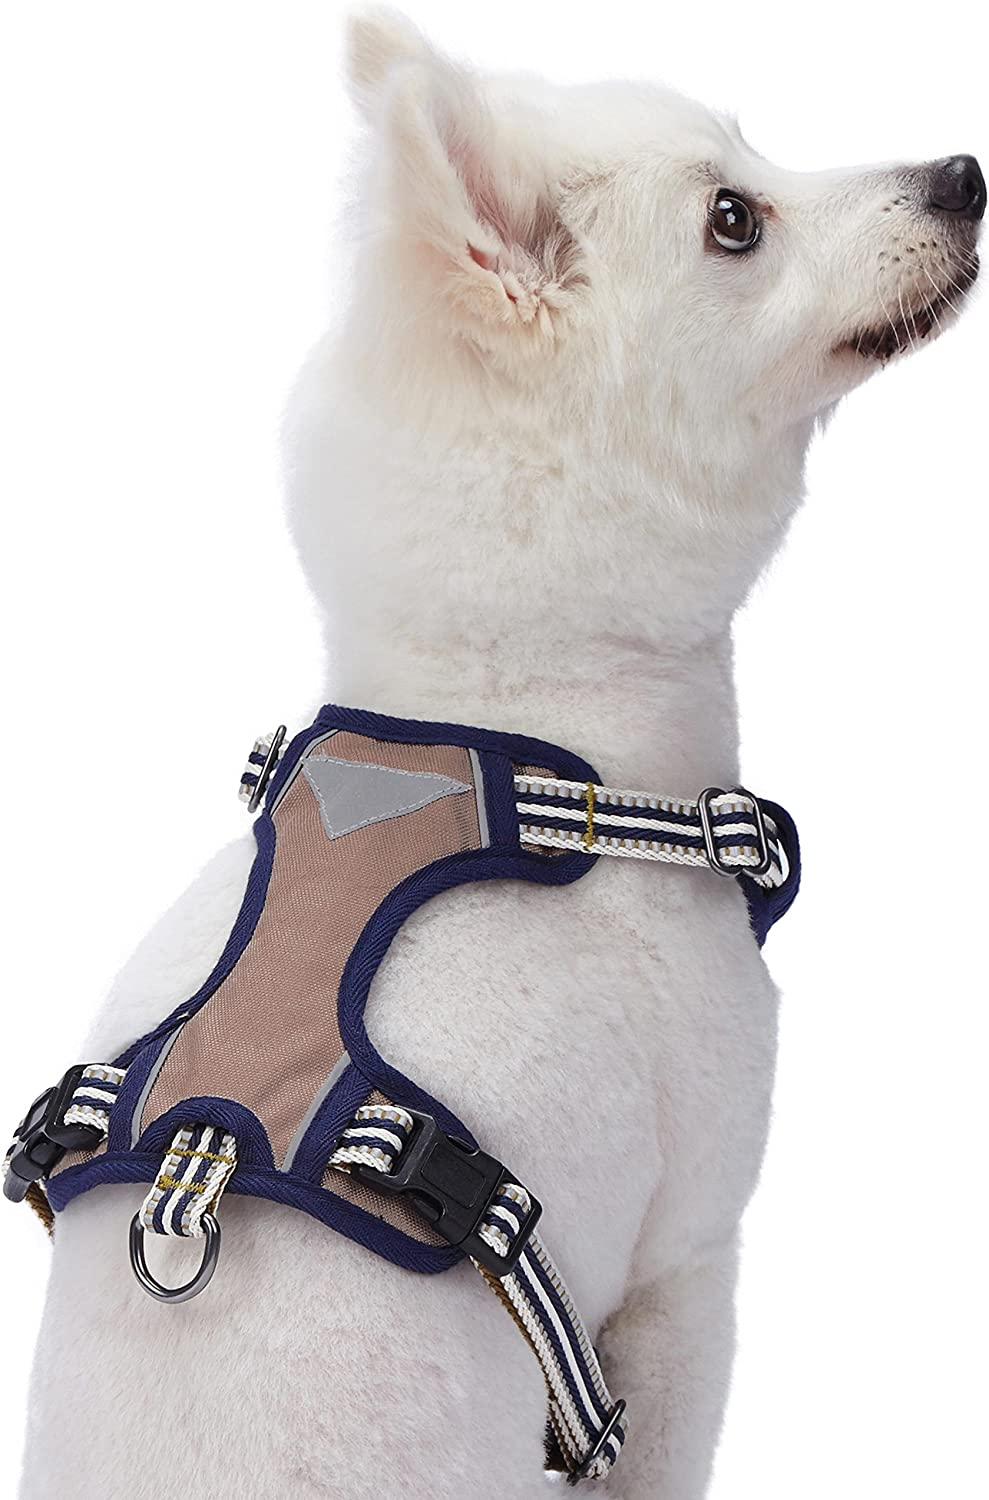 Mesh Harnesses for Dogs Small Chest Girth 45cm-54cm Neck 37cm-52cm Blueberry Pet Soft /& Comfy 3M Reflective Multi-colored Stripe Padded Dog Harness Vest Olive /& Blue-gray